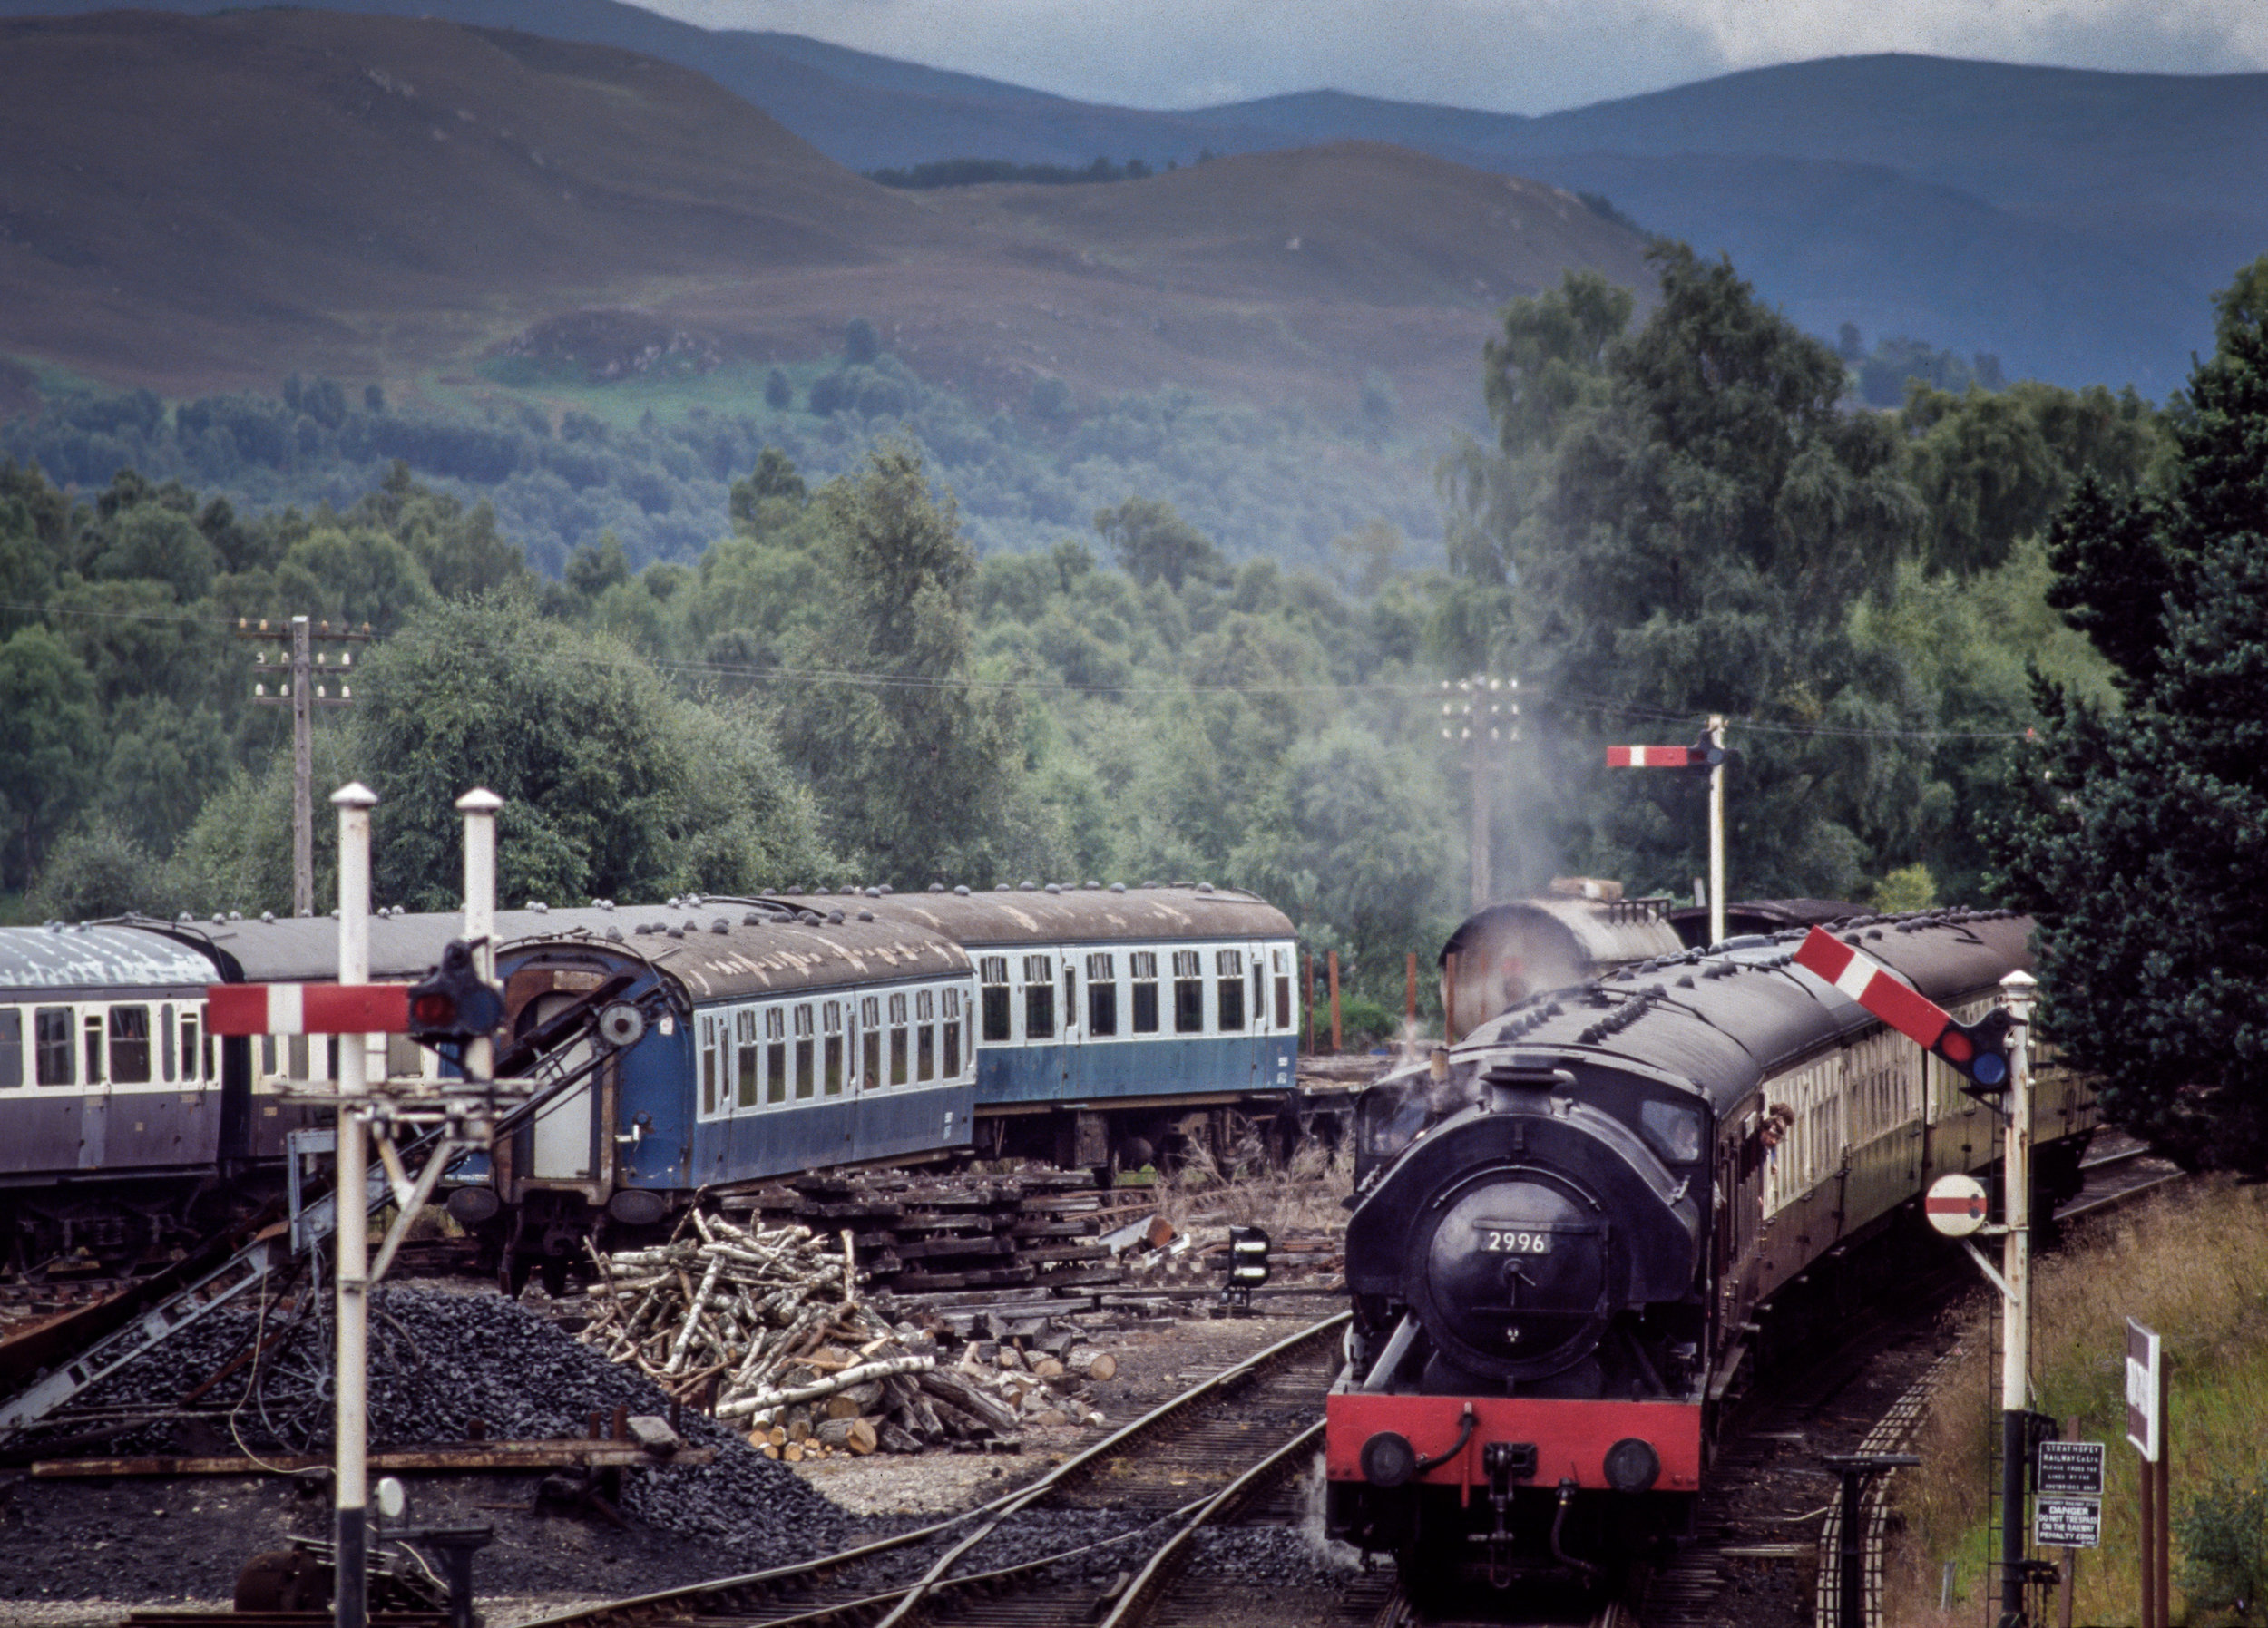 A Strathspey Railway train comes into the yard in Boat of Garten, Scotland